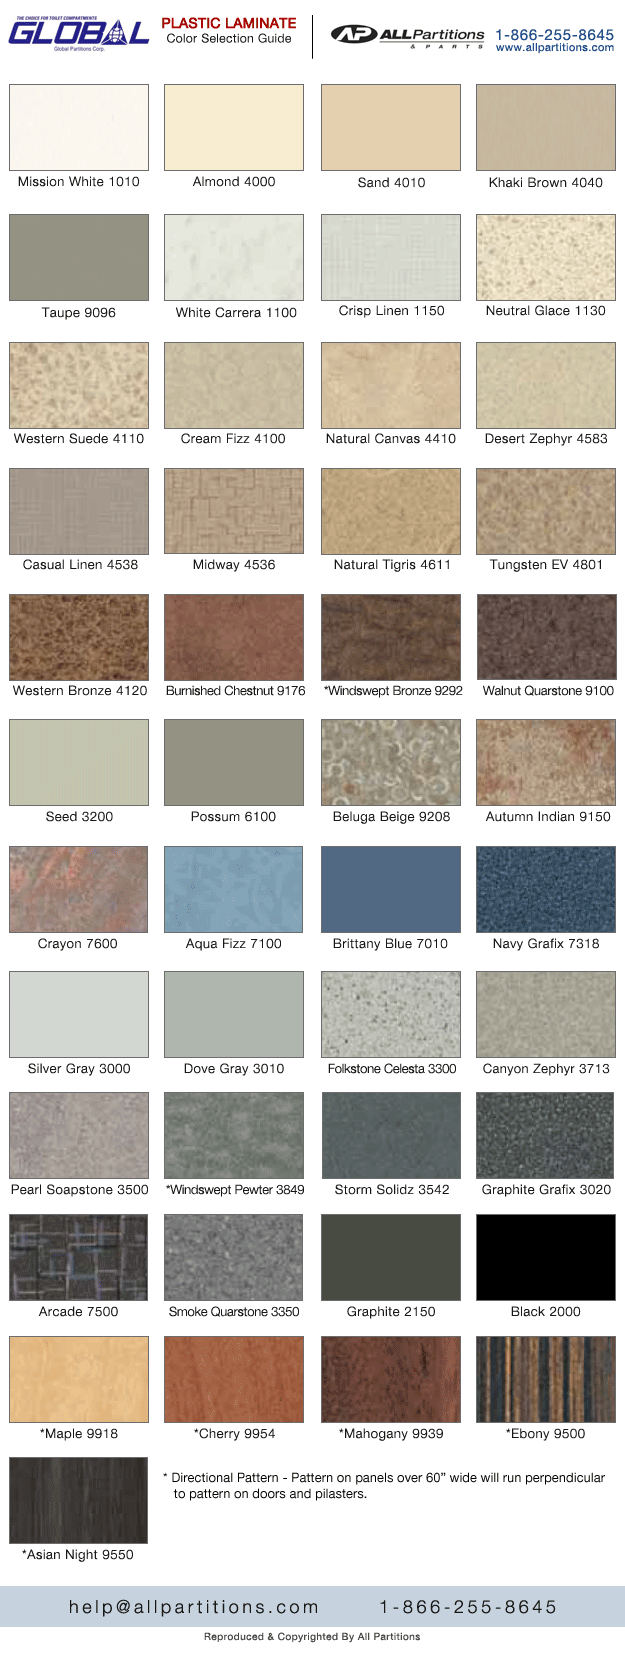 Allpartitionsandparts global plastic laminate colors nvjuhfo Gallery